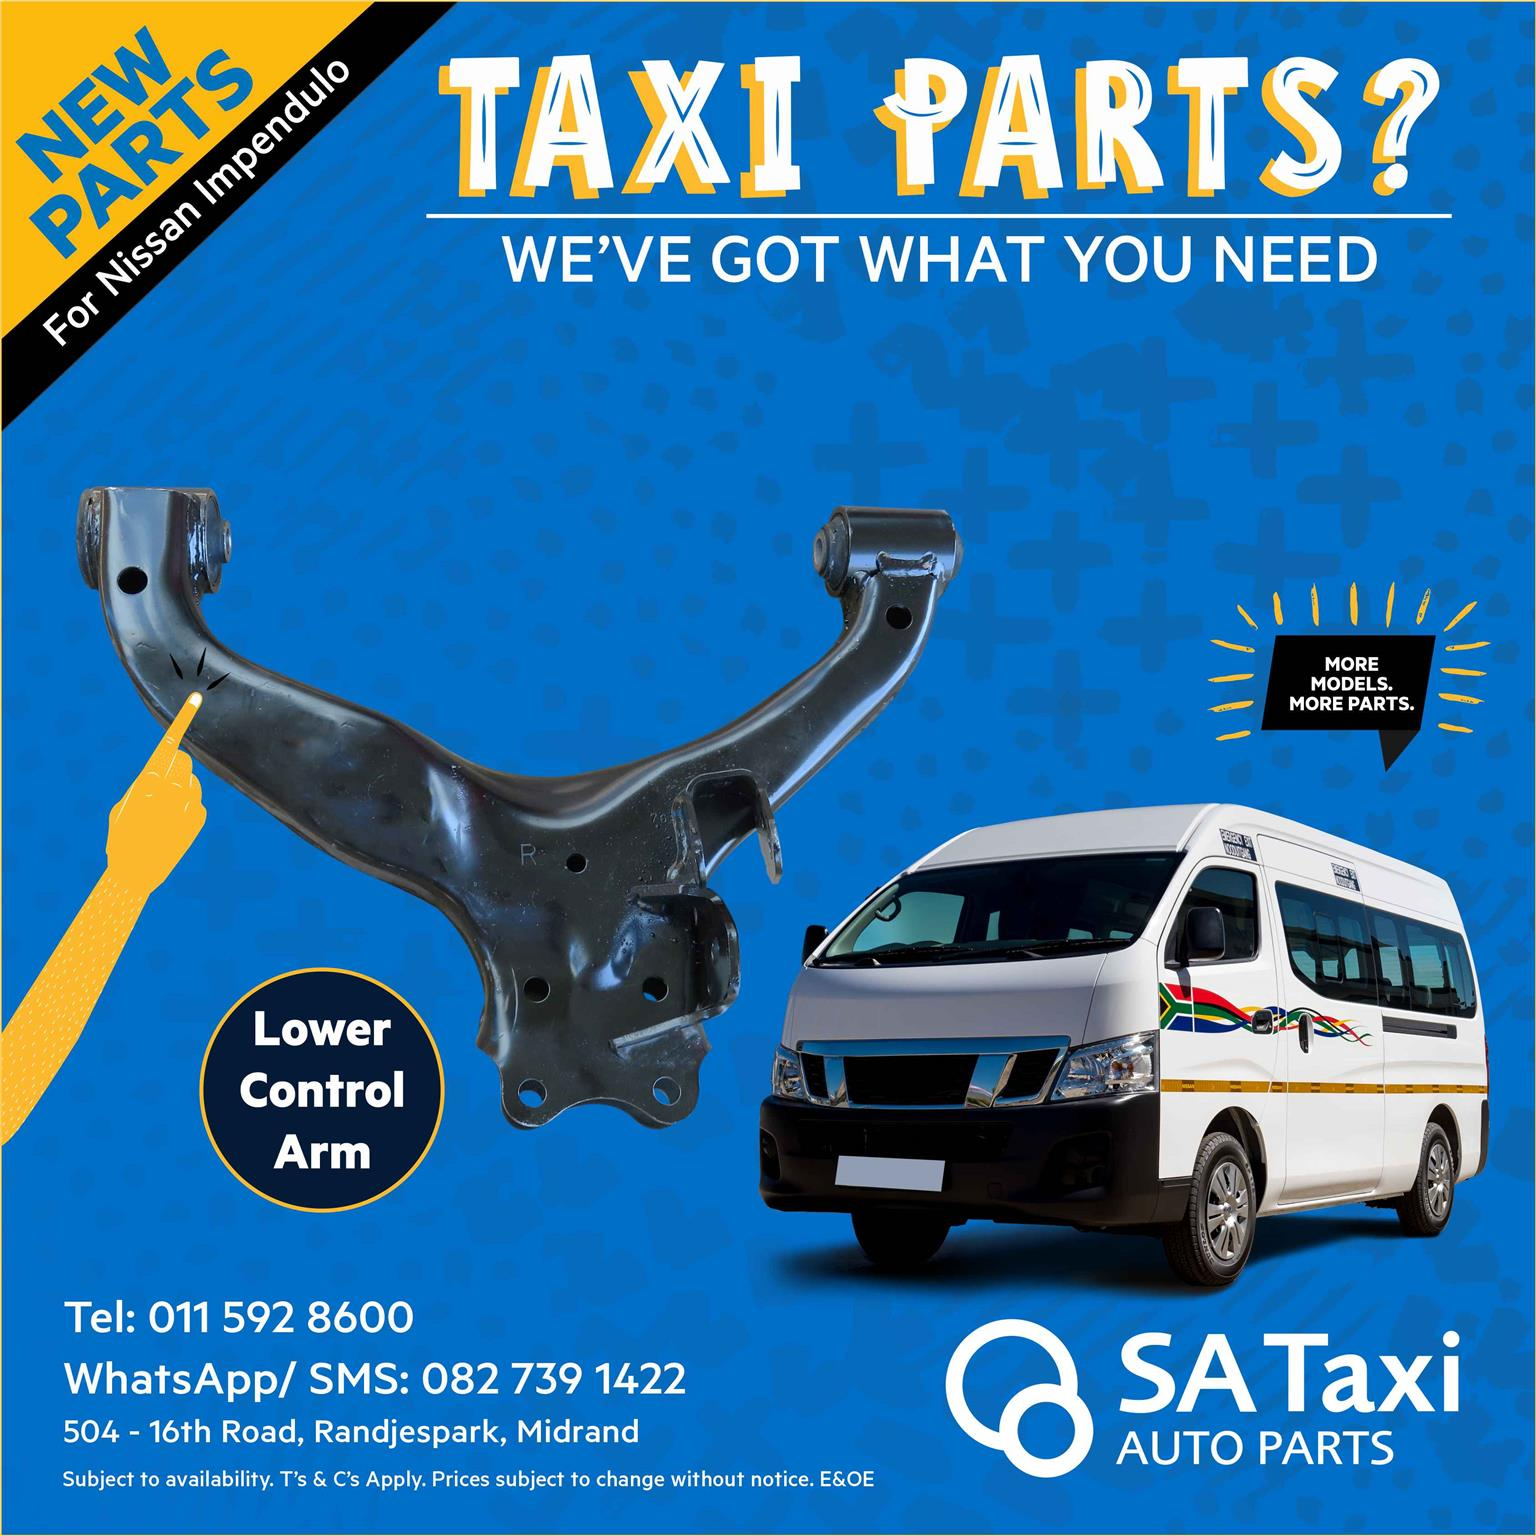 NEW Lower Control Arm suitable for Nissan NV350 Impendulo - SA Taxi Auto Parts quality spares